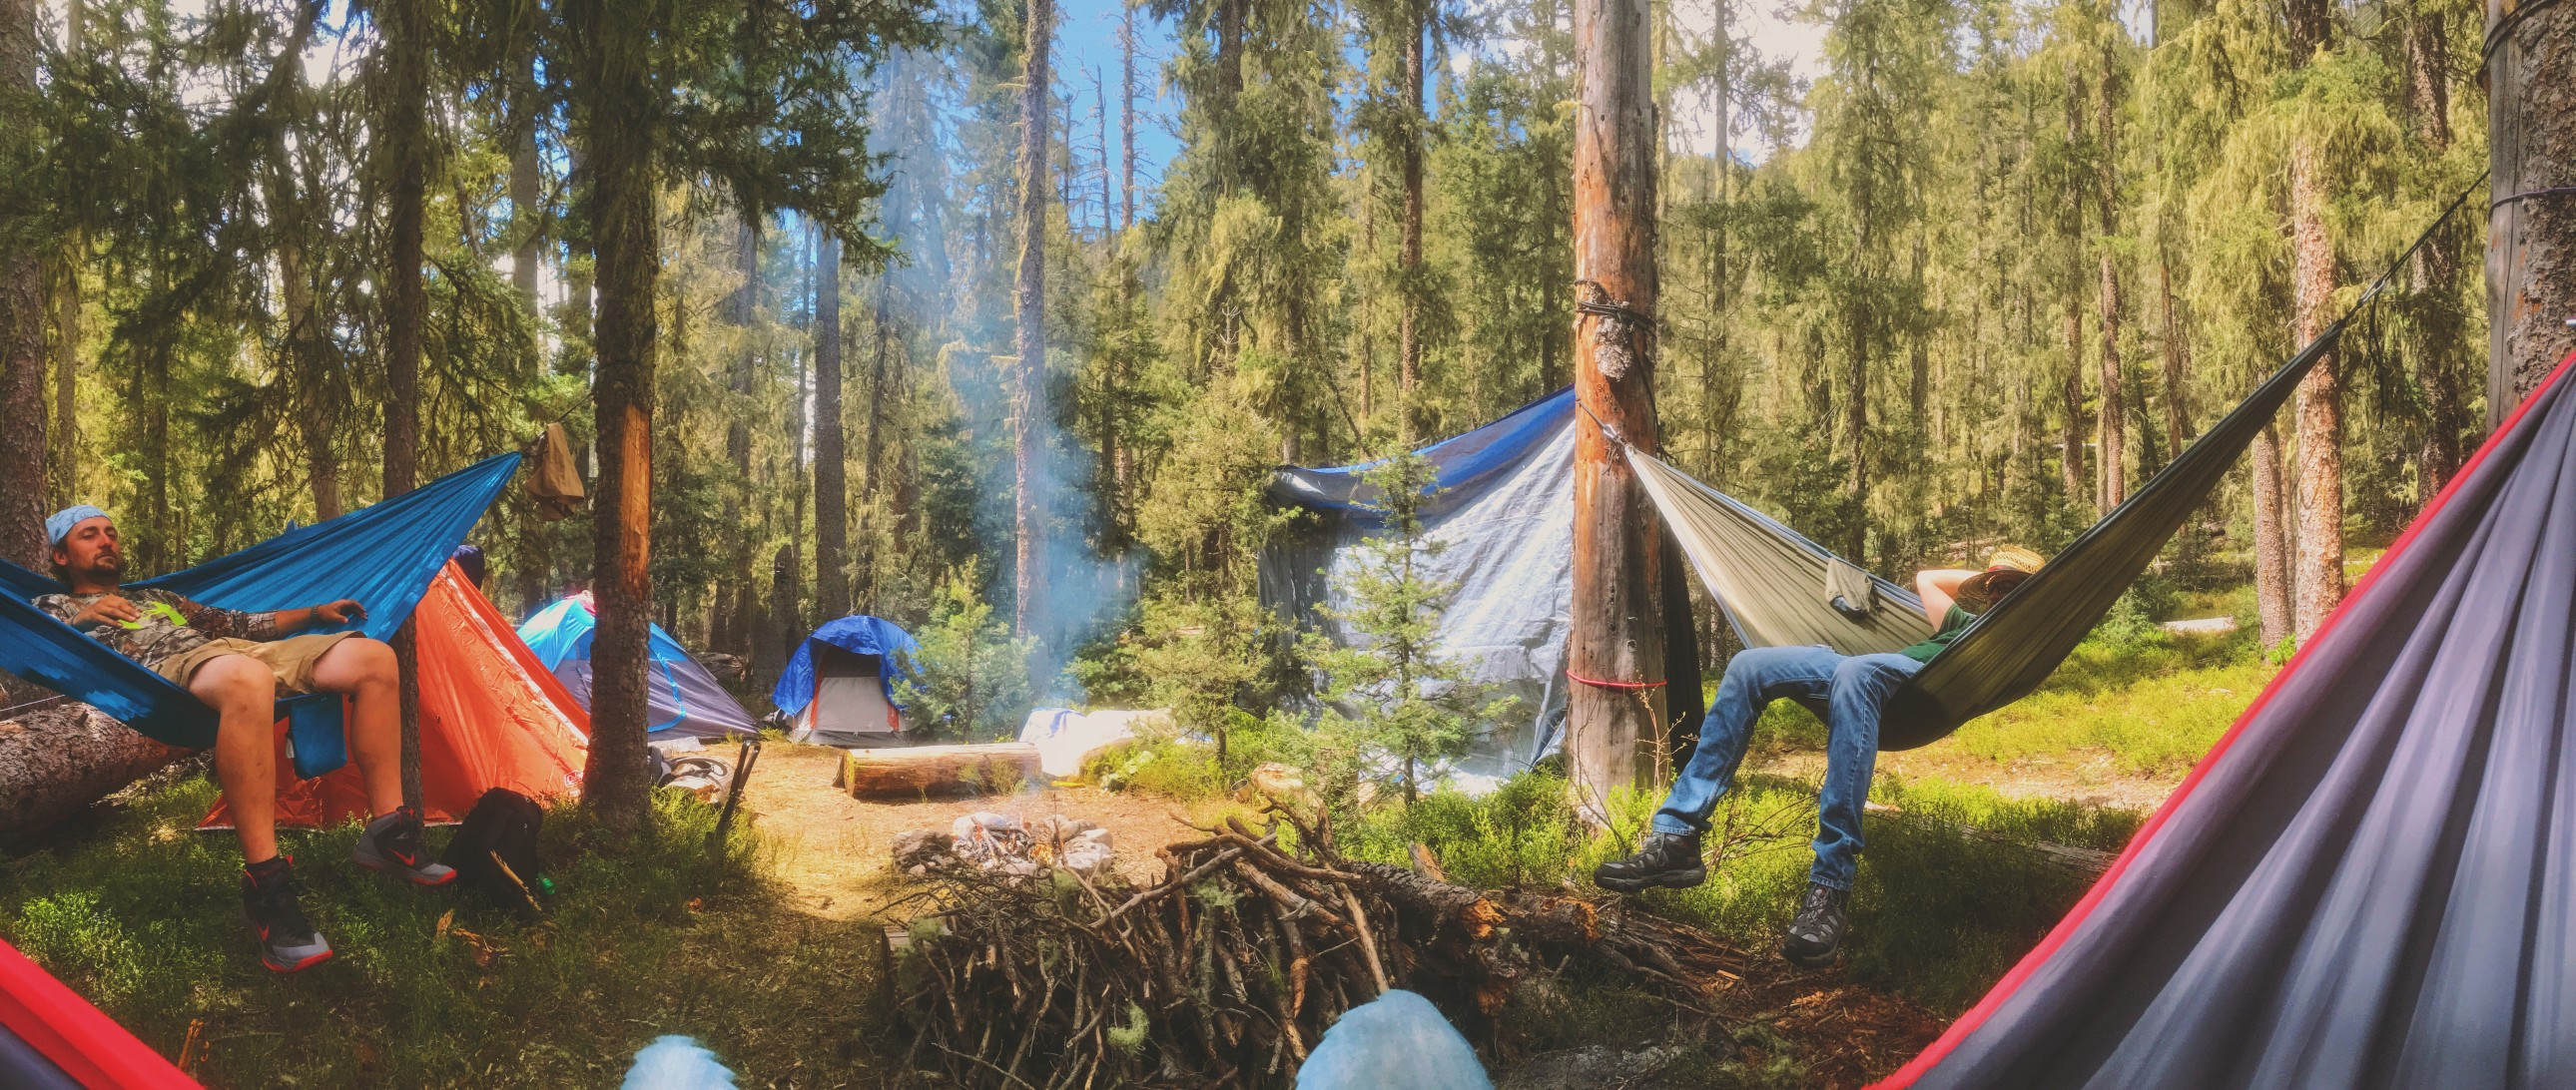 7 Best Sites for Free Camping in New Mexico